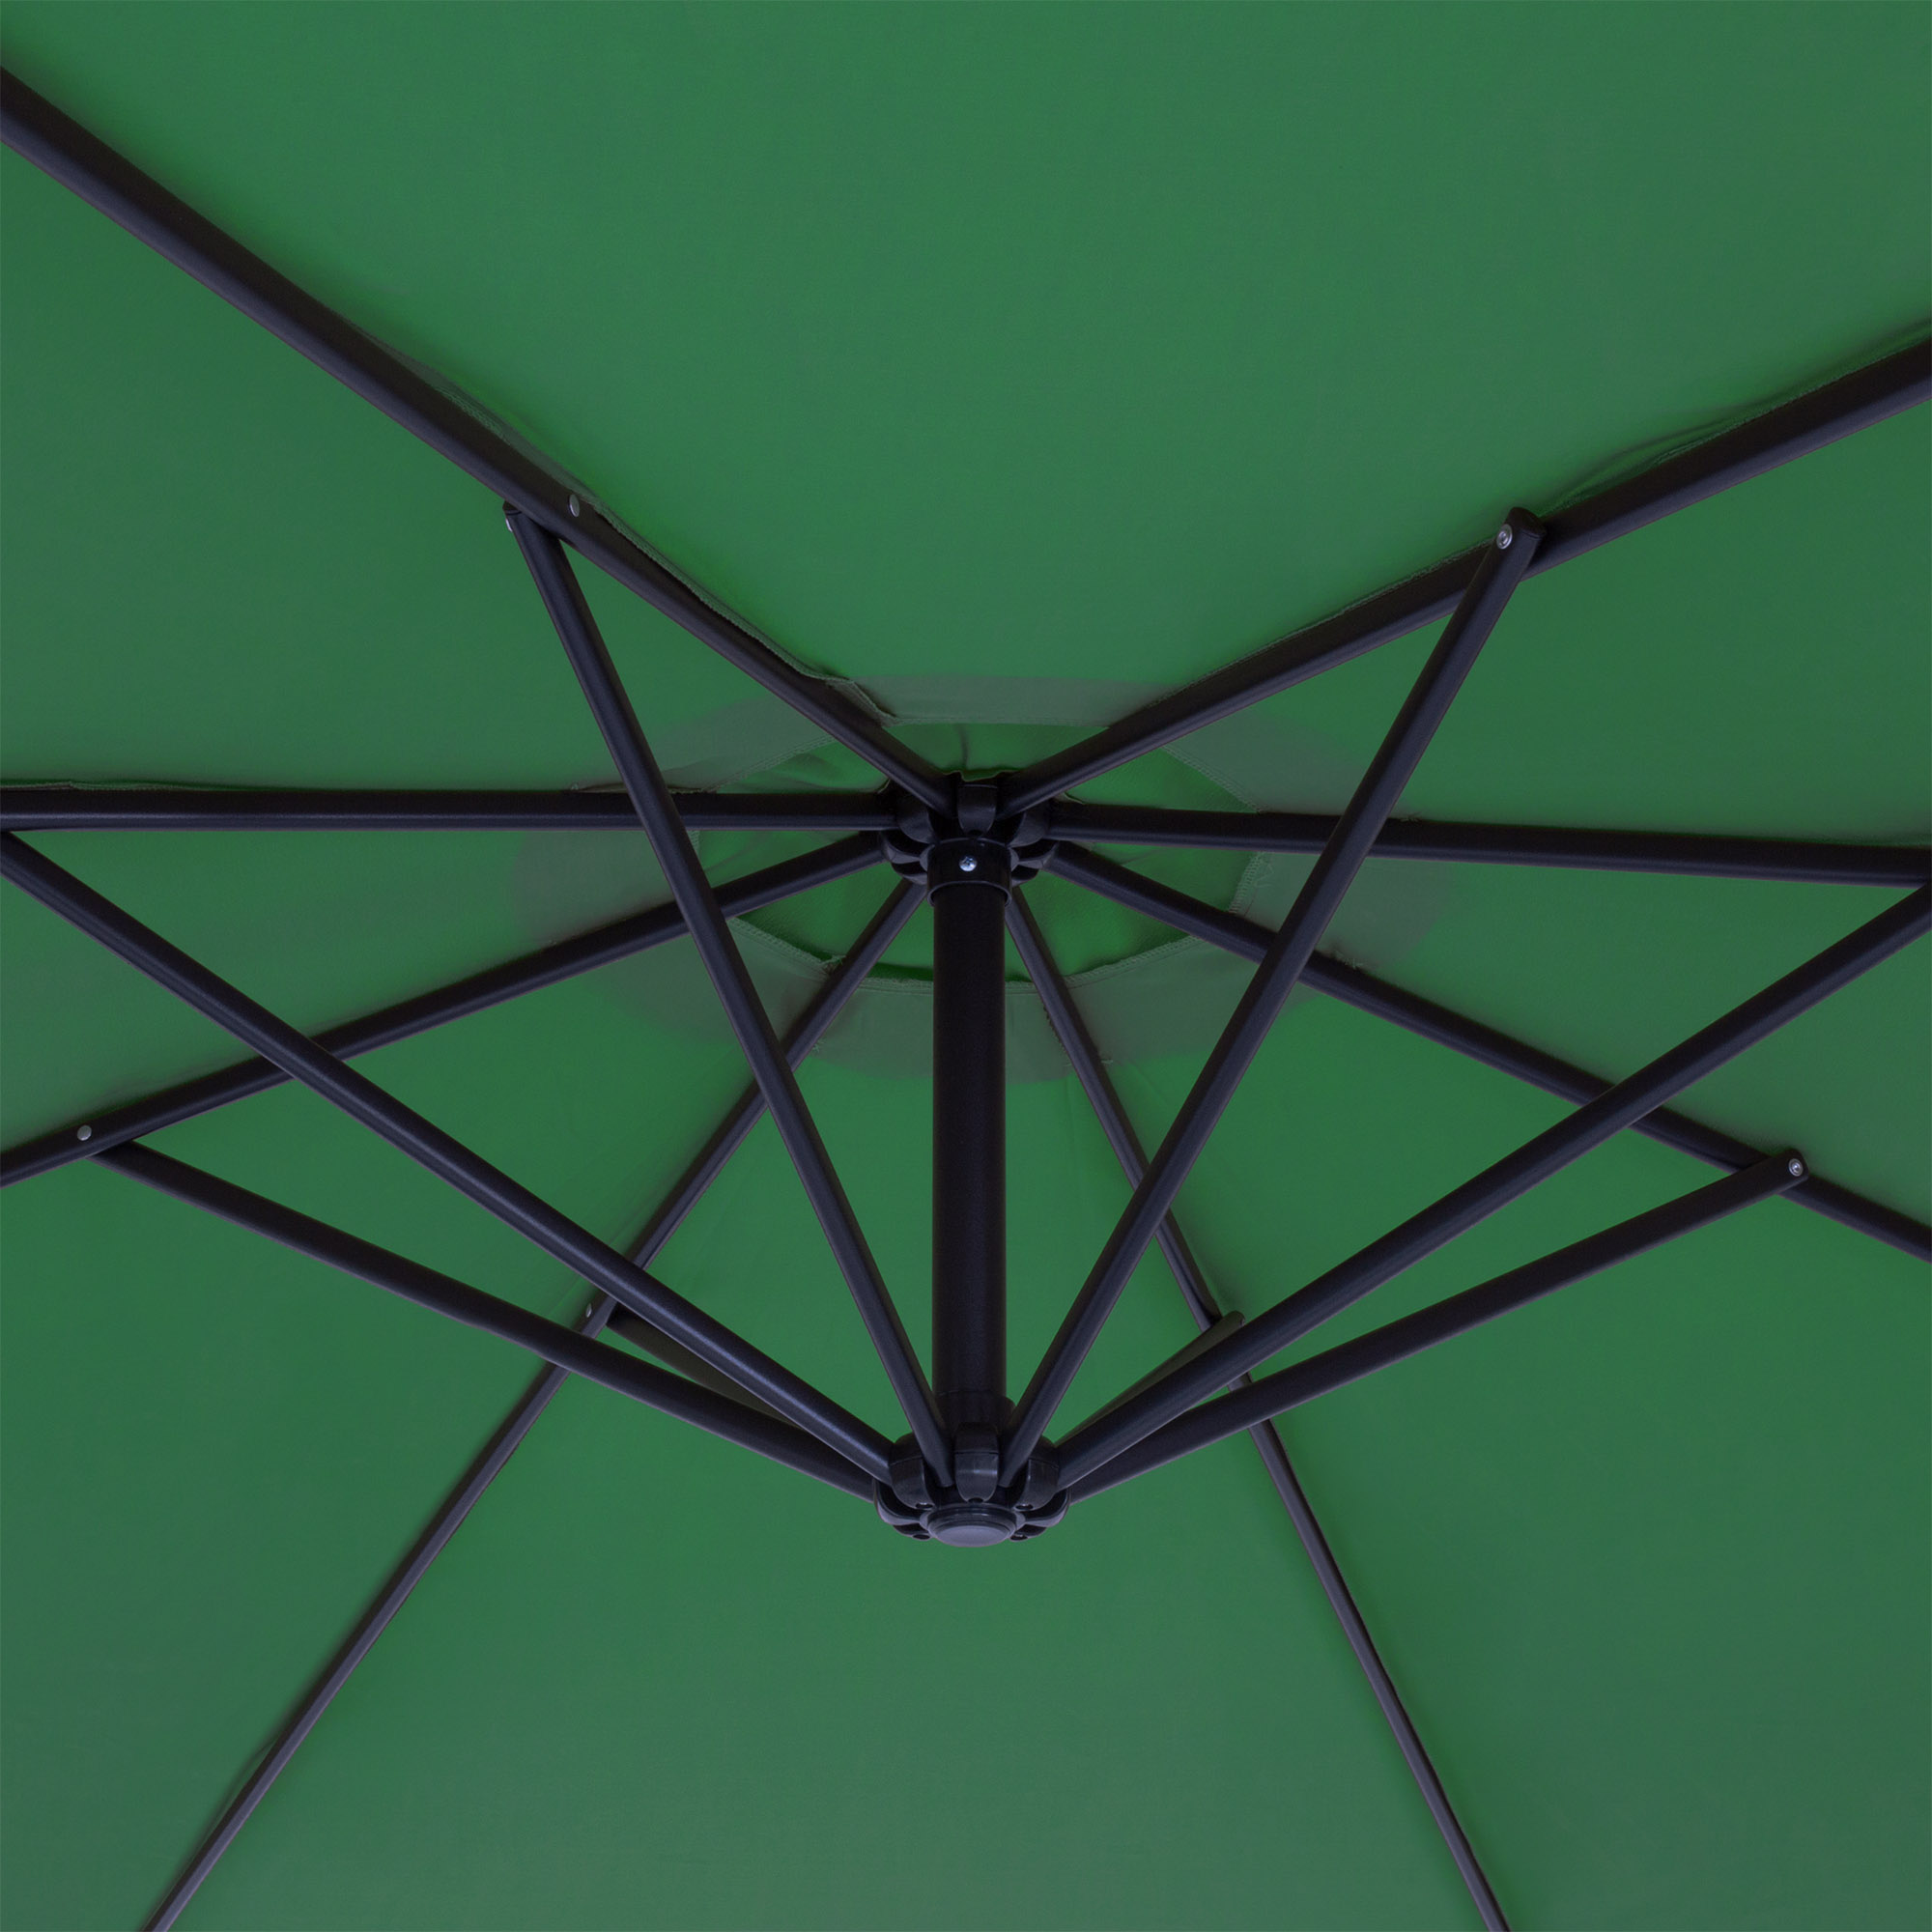 BCP-10ft-Offset-Hanging-Market-Patio-Umbrella-w-Tilt-Adjustment-Hand-Crank thumbnail 34